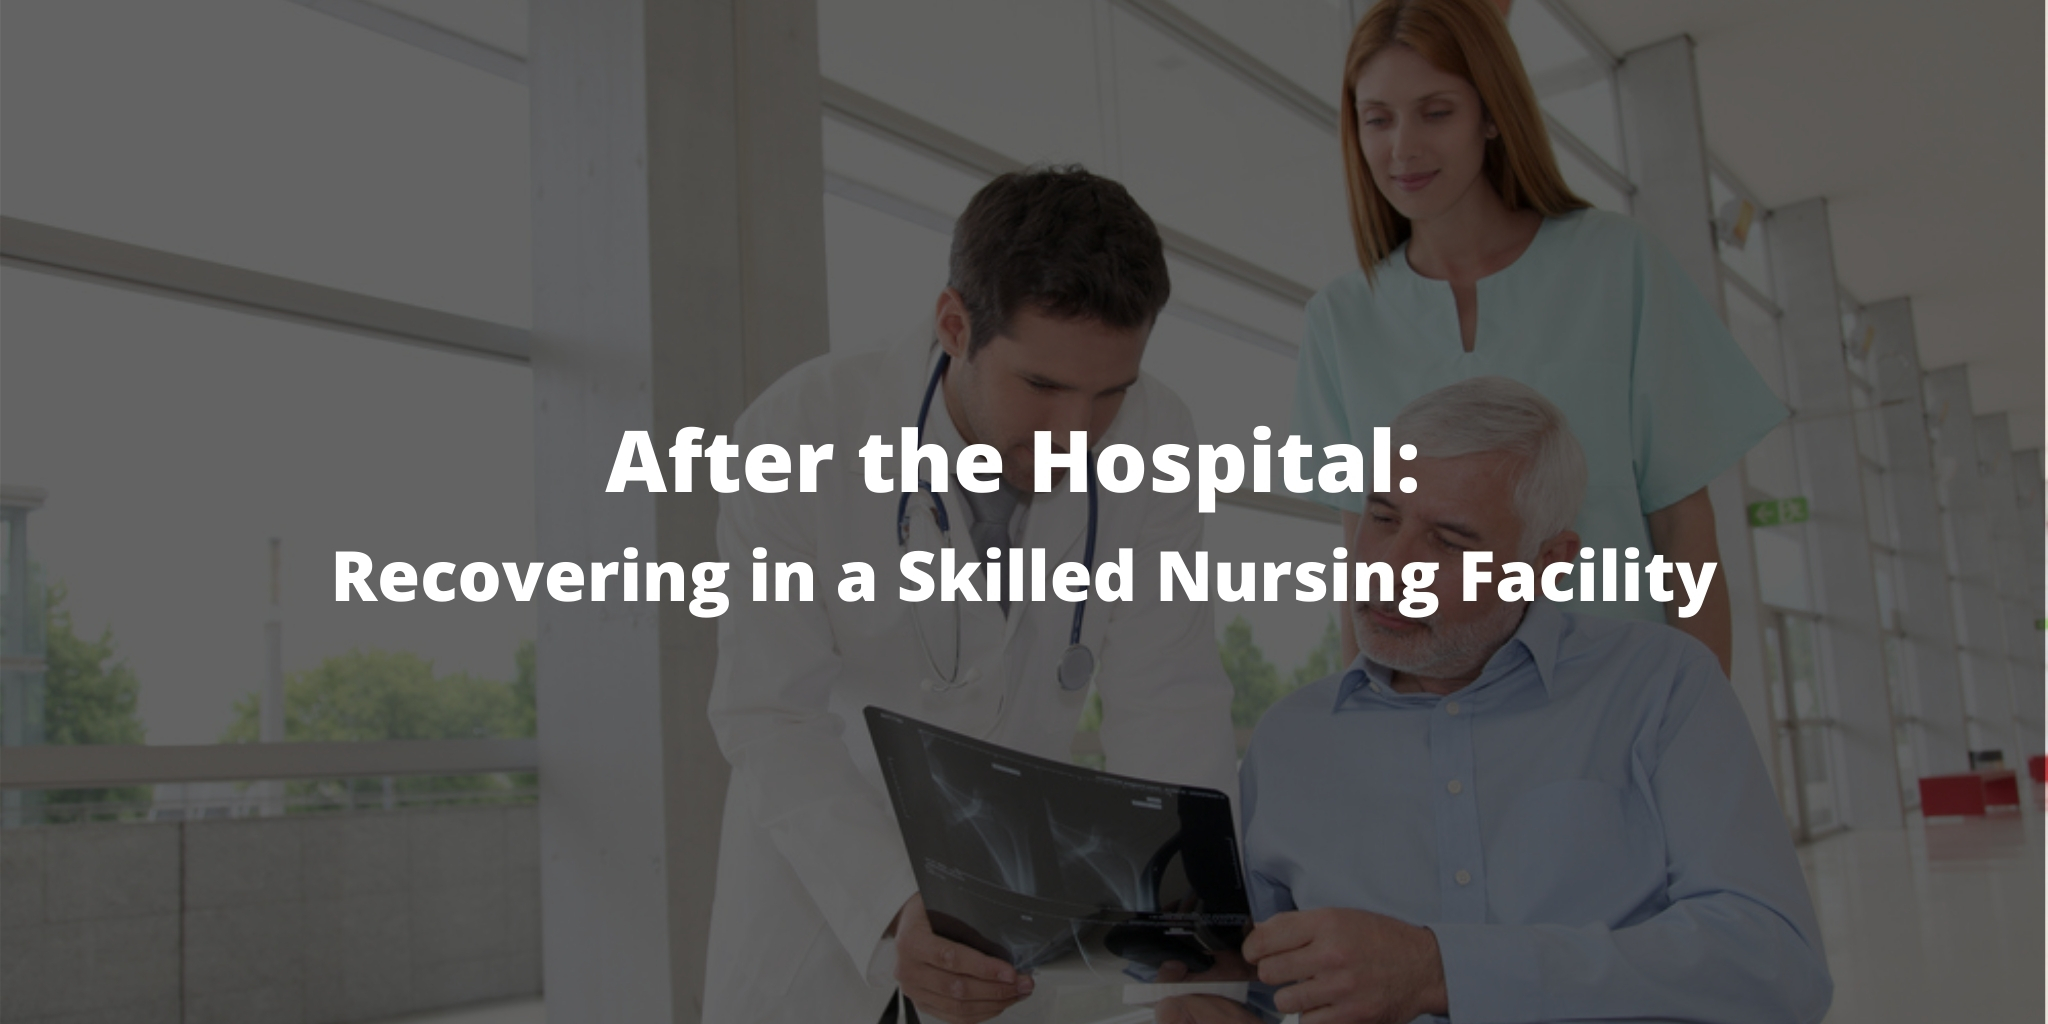 After the Hospital: Recovering in a Skilled Nursing Facility